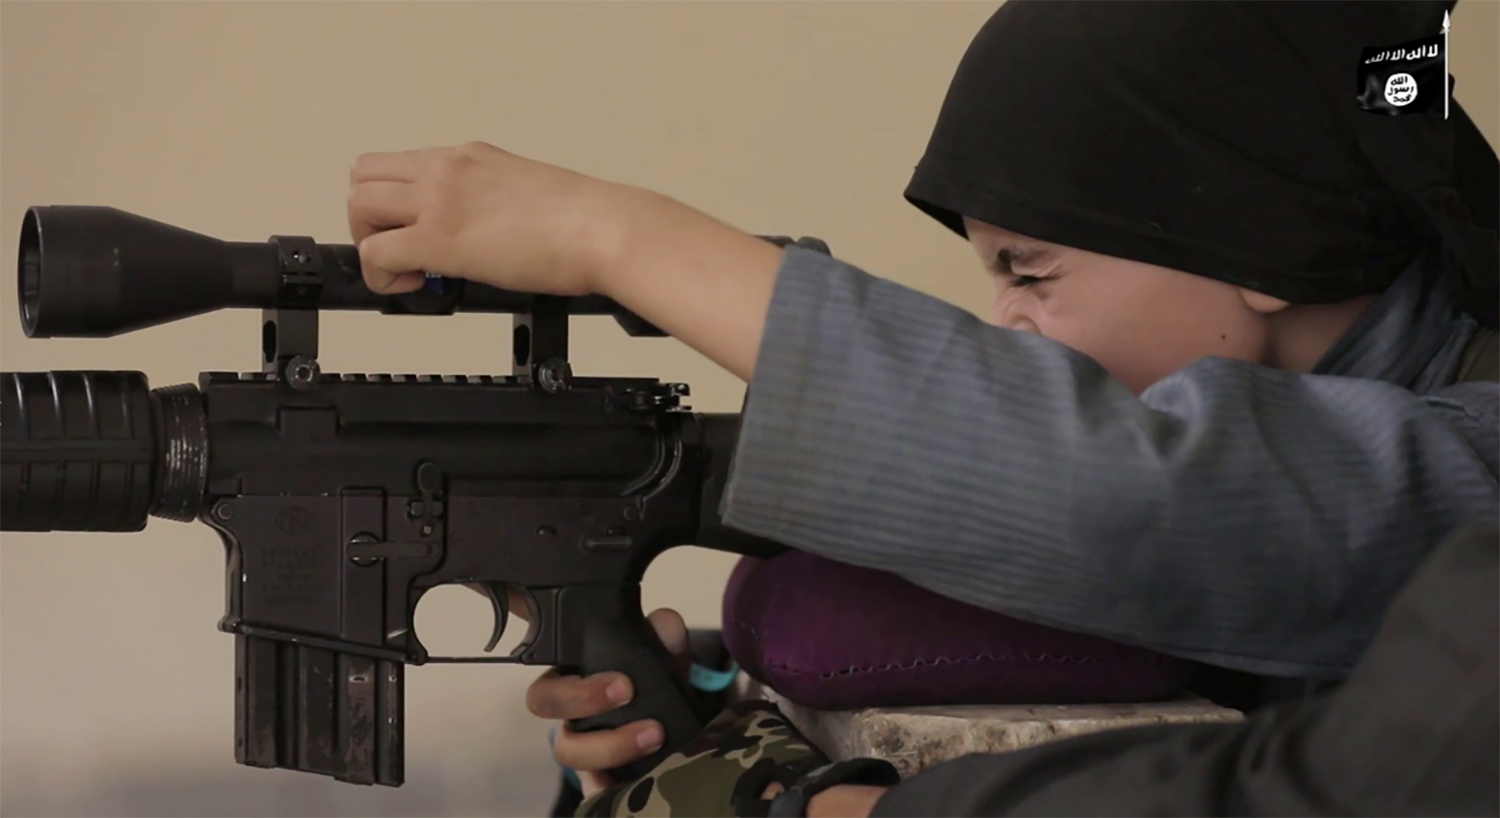 Image: A child who indicated that his name is Yousef, 10 years old speaks in an ISIS video titled